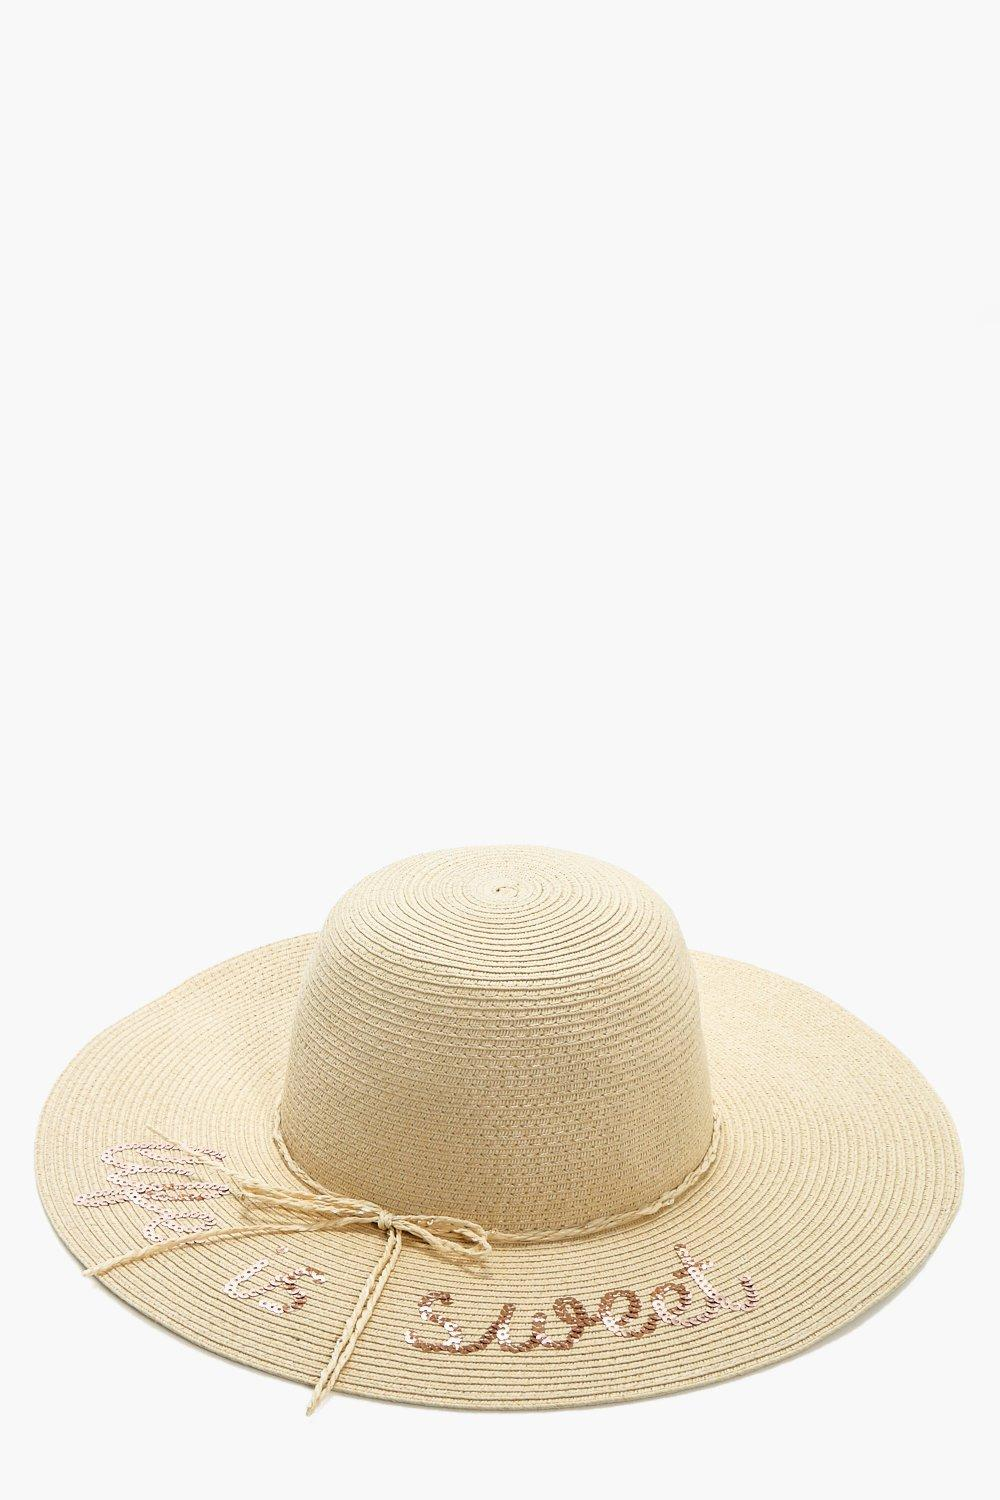 Sequin Slogan Straw Hat - natural - Louise Sequin